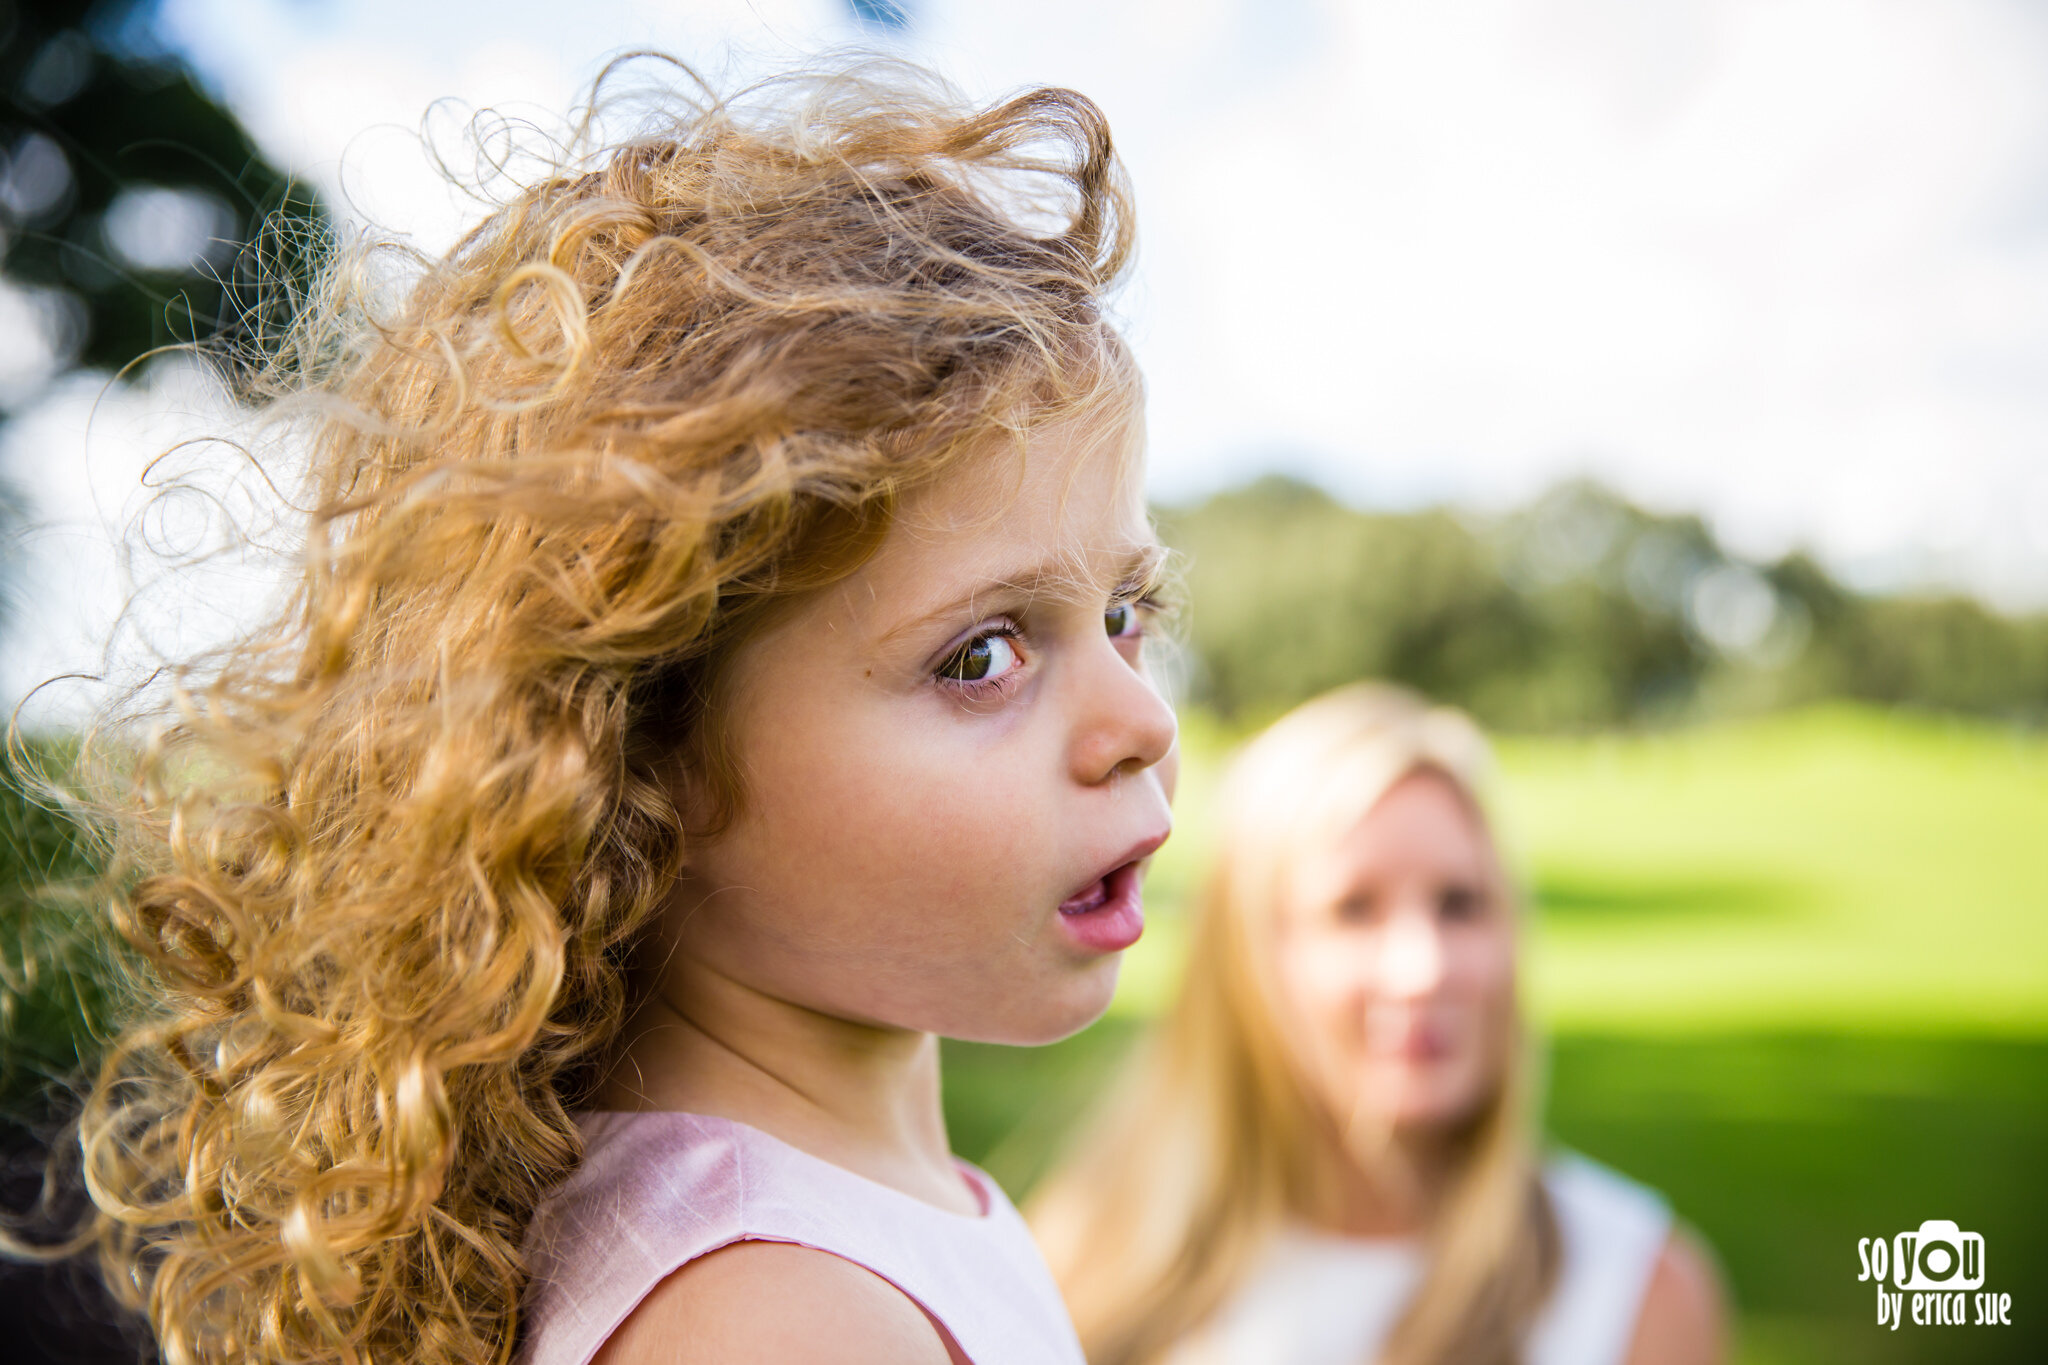 so-you-by-erica-sue-south-florida-extended-family-lifestyle-photo-session-1814.JPG